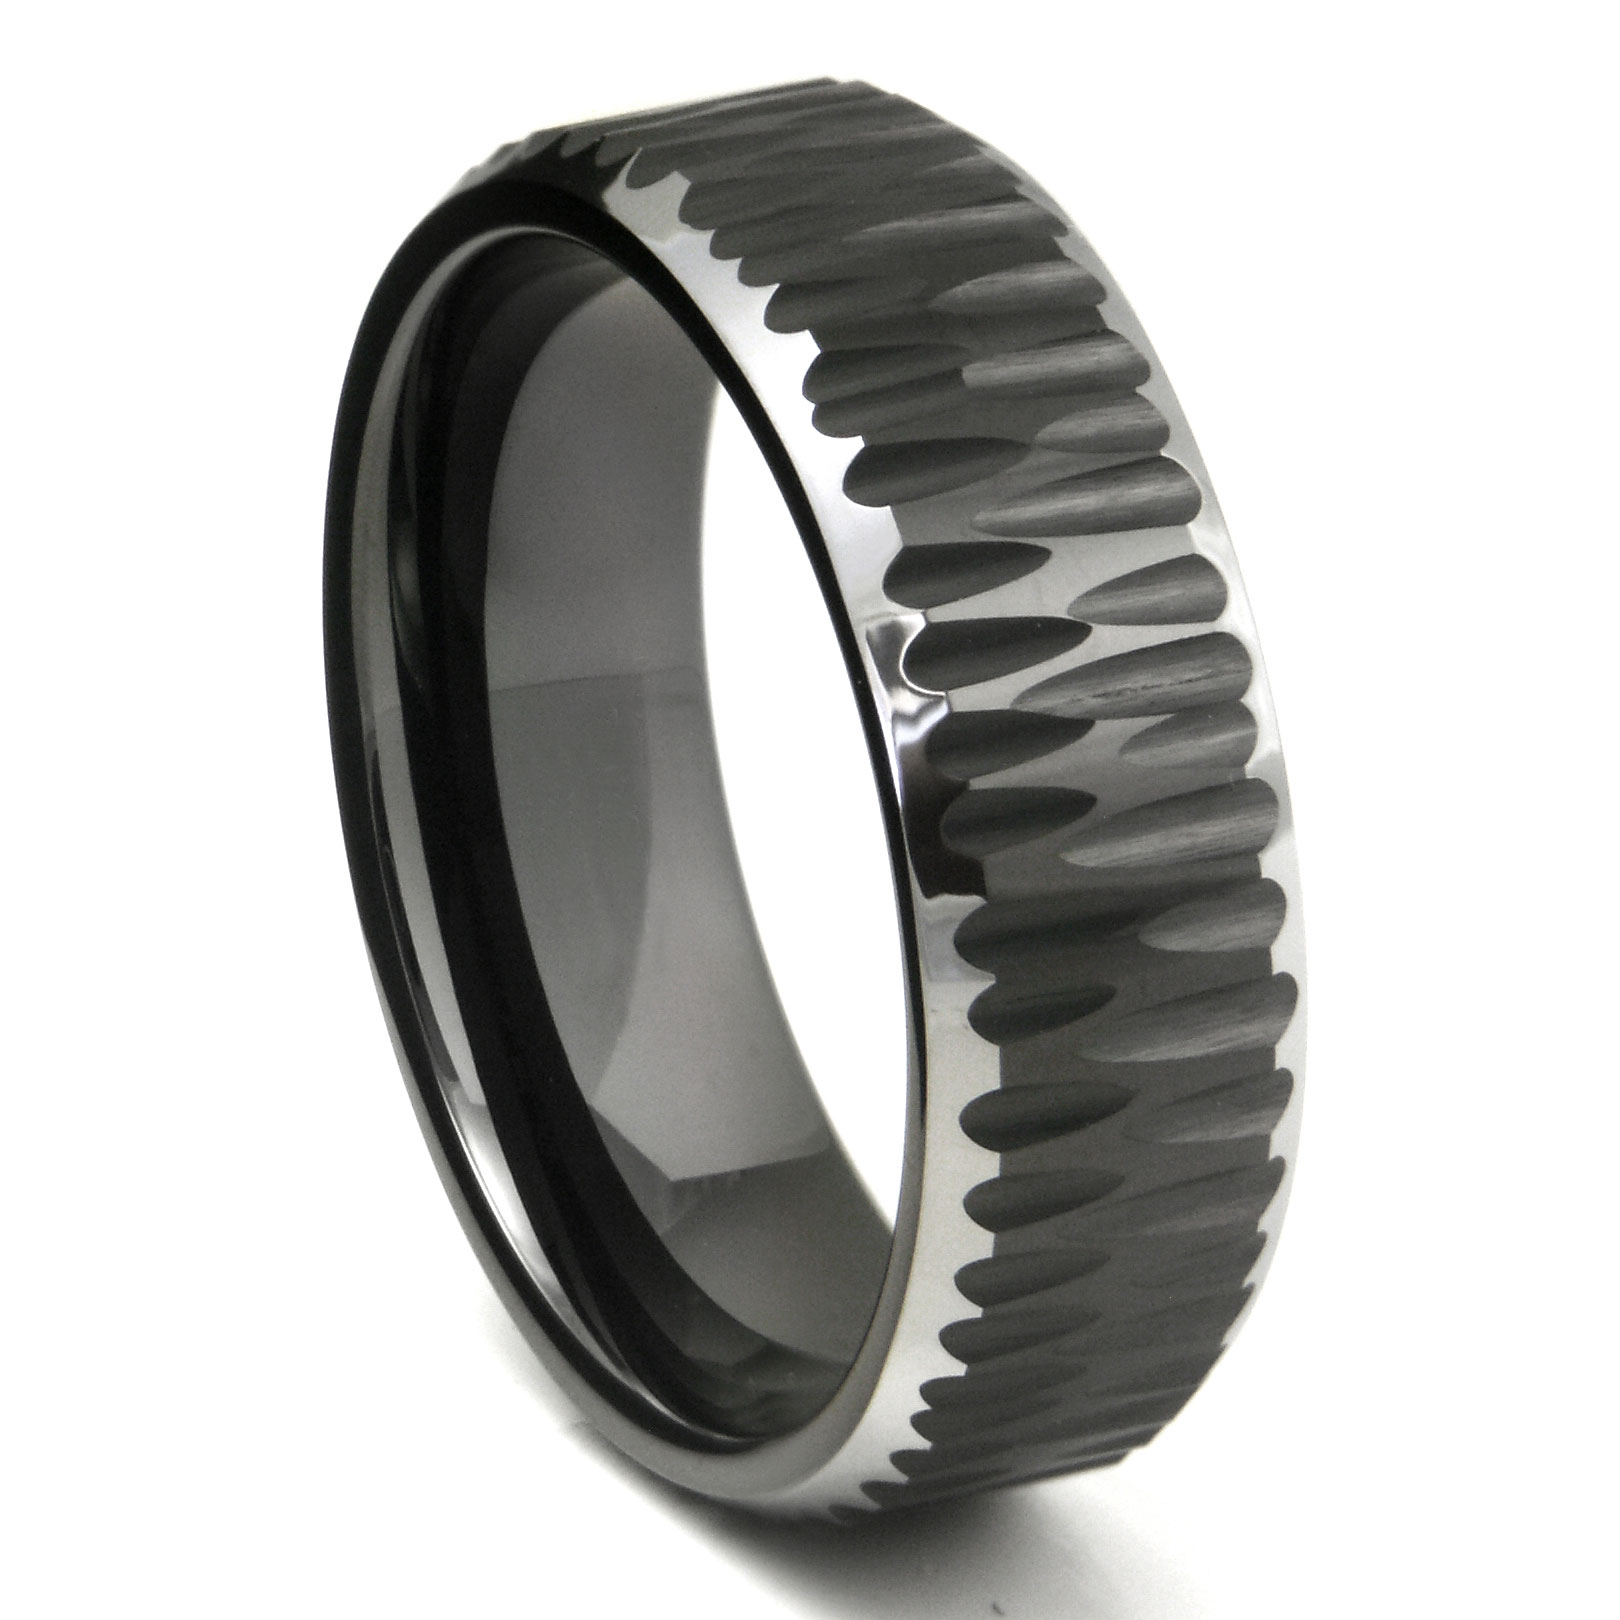 gunmetal carbide gold wedding image rose mens band grey black and jewellery interior with ring tungsten rings besttohave brushed